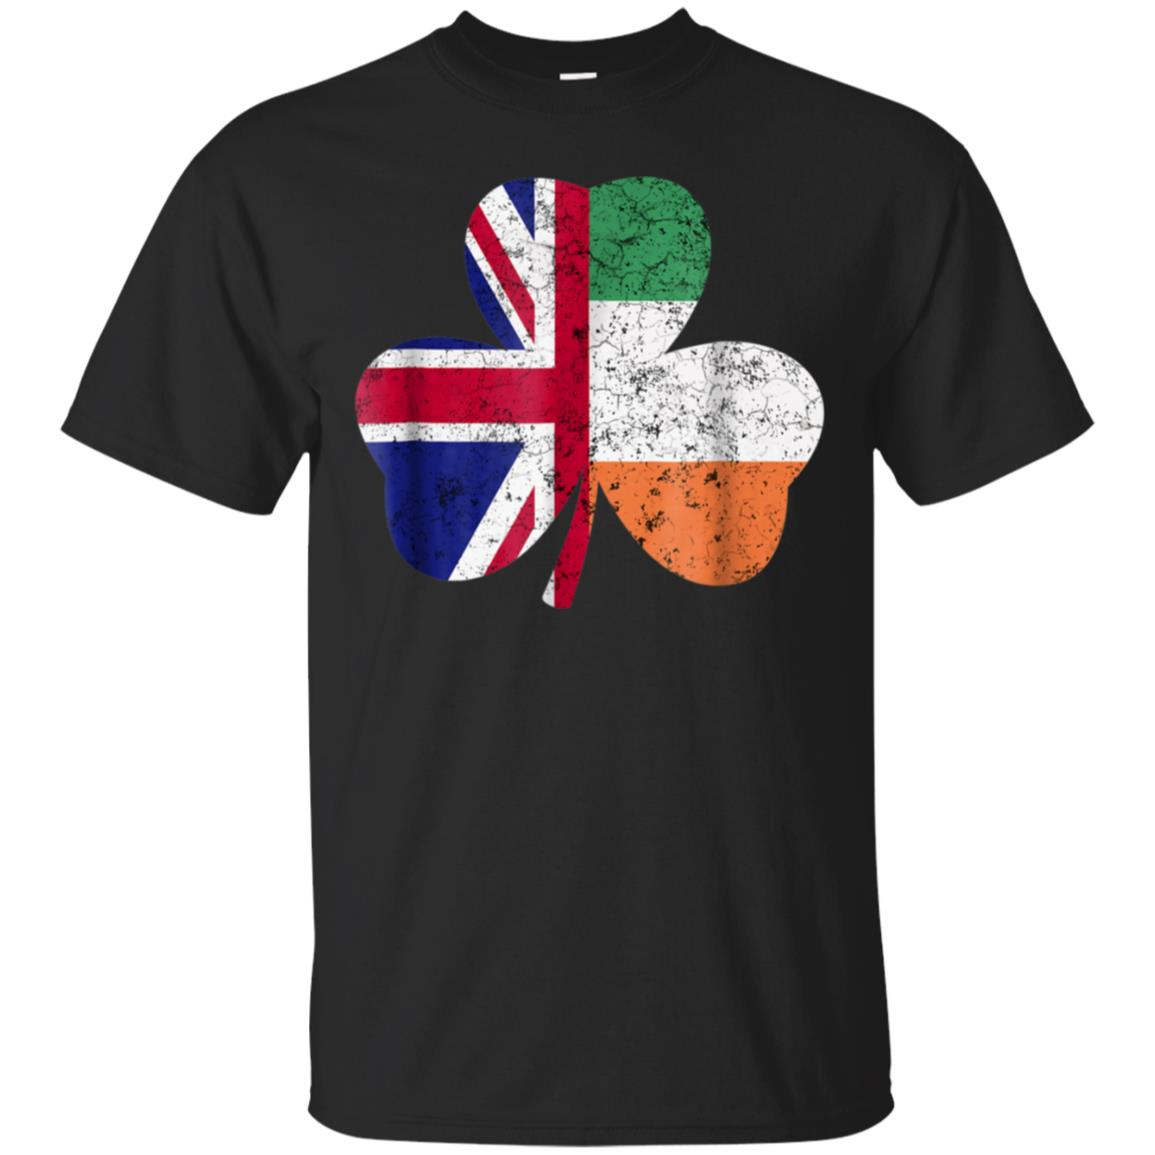 British Flag Irish T Shirt St Patricks Day Party Clothes 99promocode